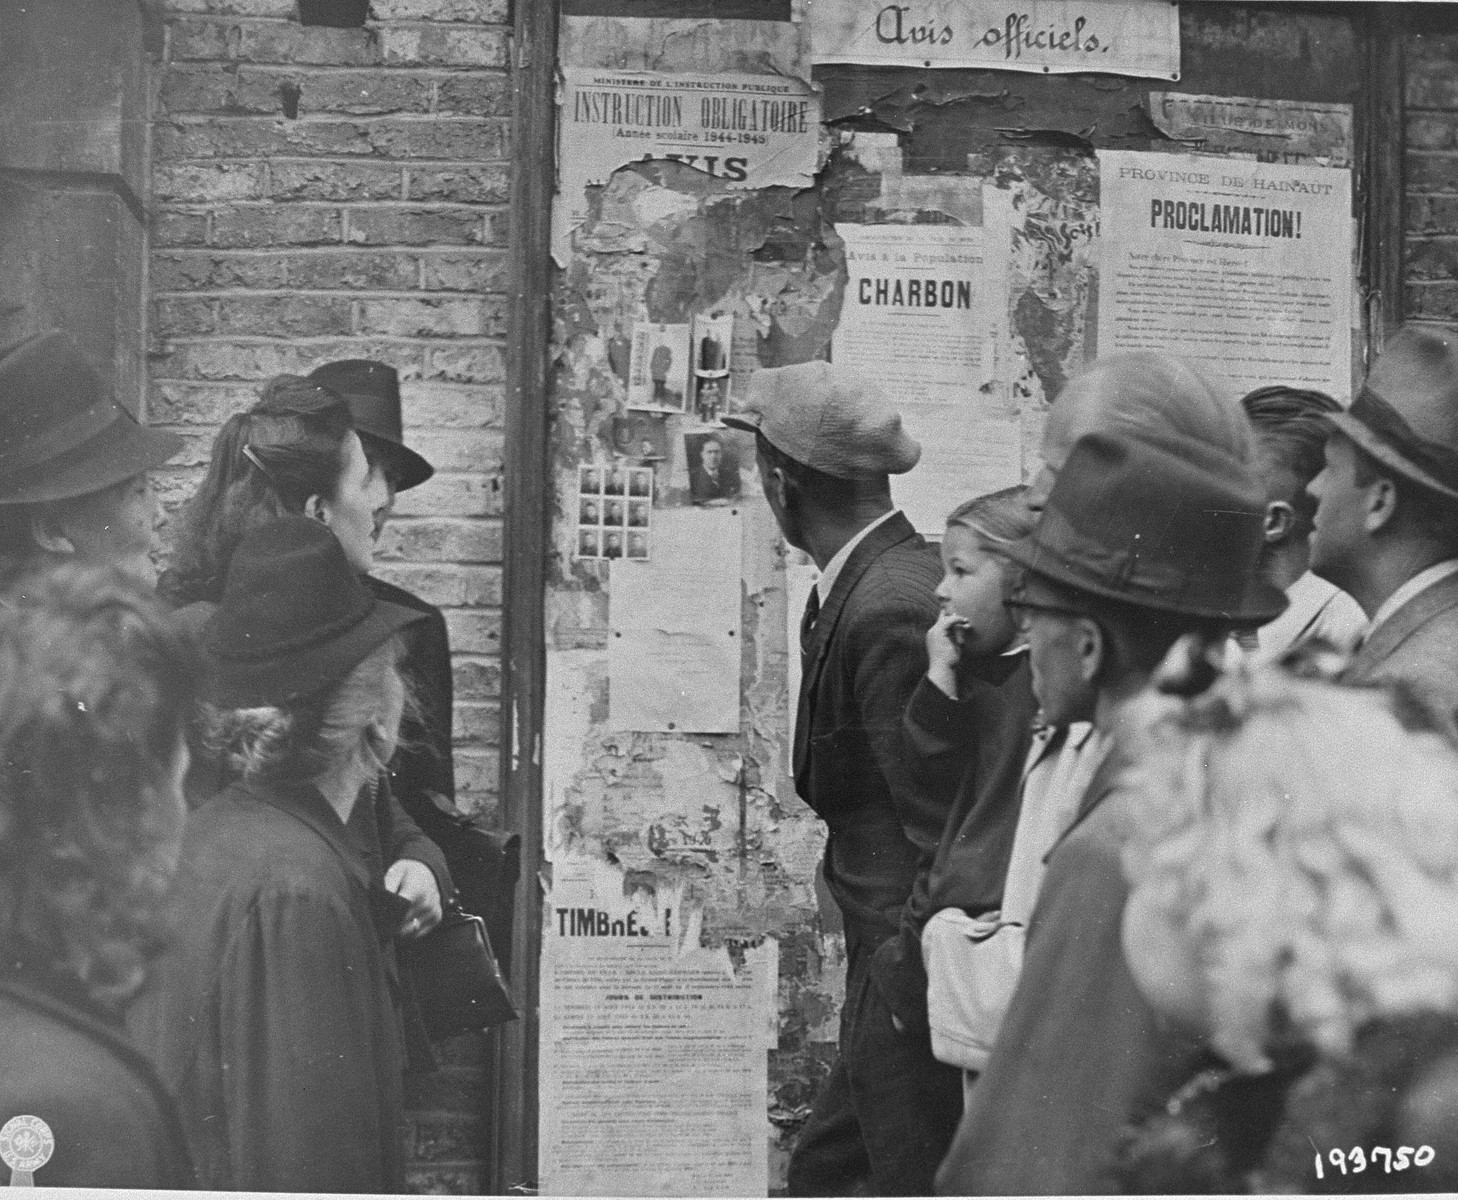 Some of the Belgian inhabitants of Mons look at the photos of collaborators posted on a public bulletin board.